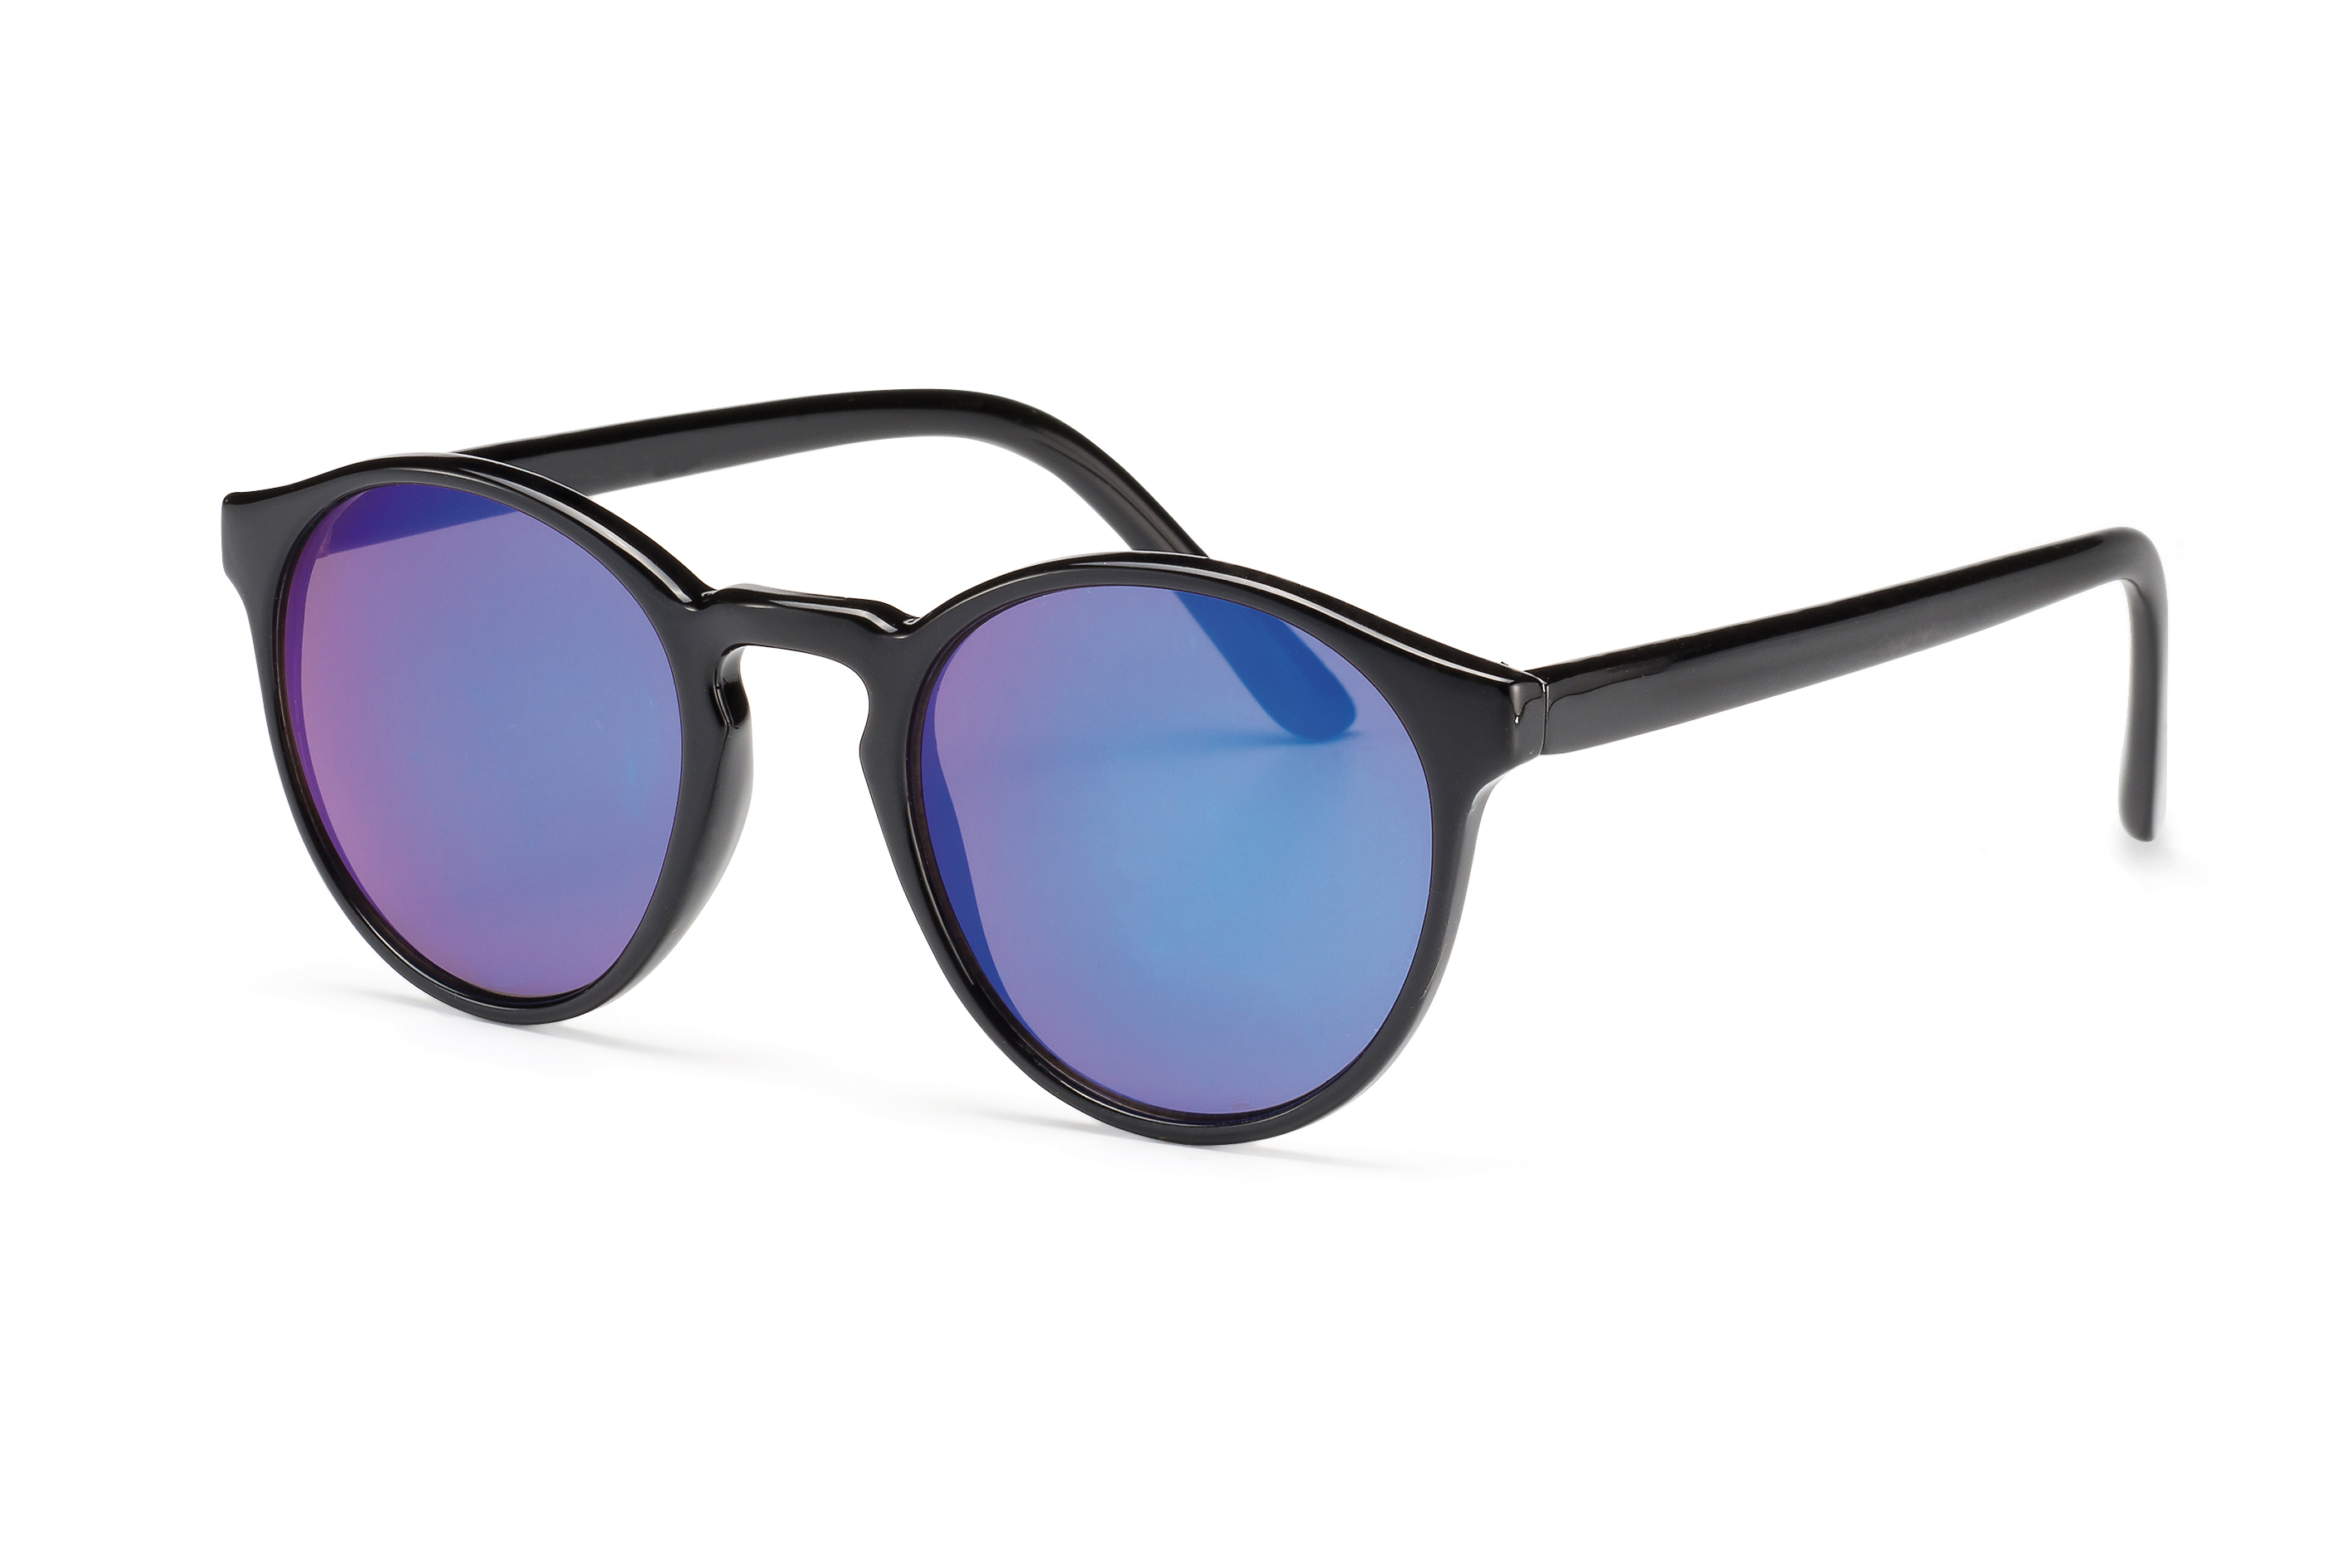 Main view round sunglasses 3002107